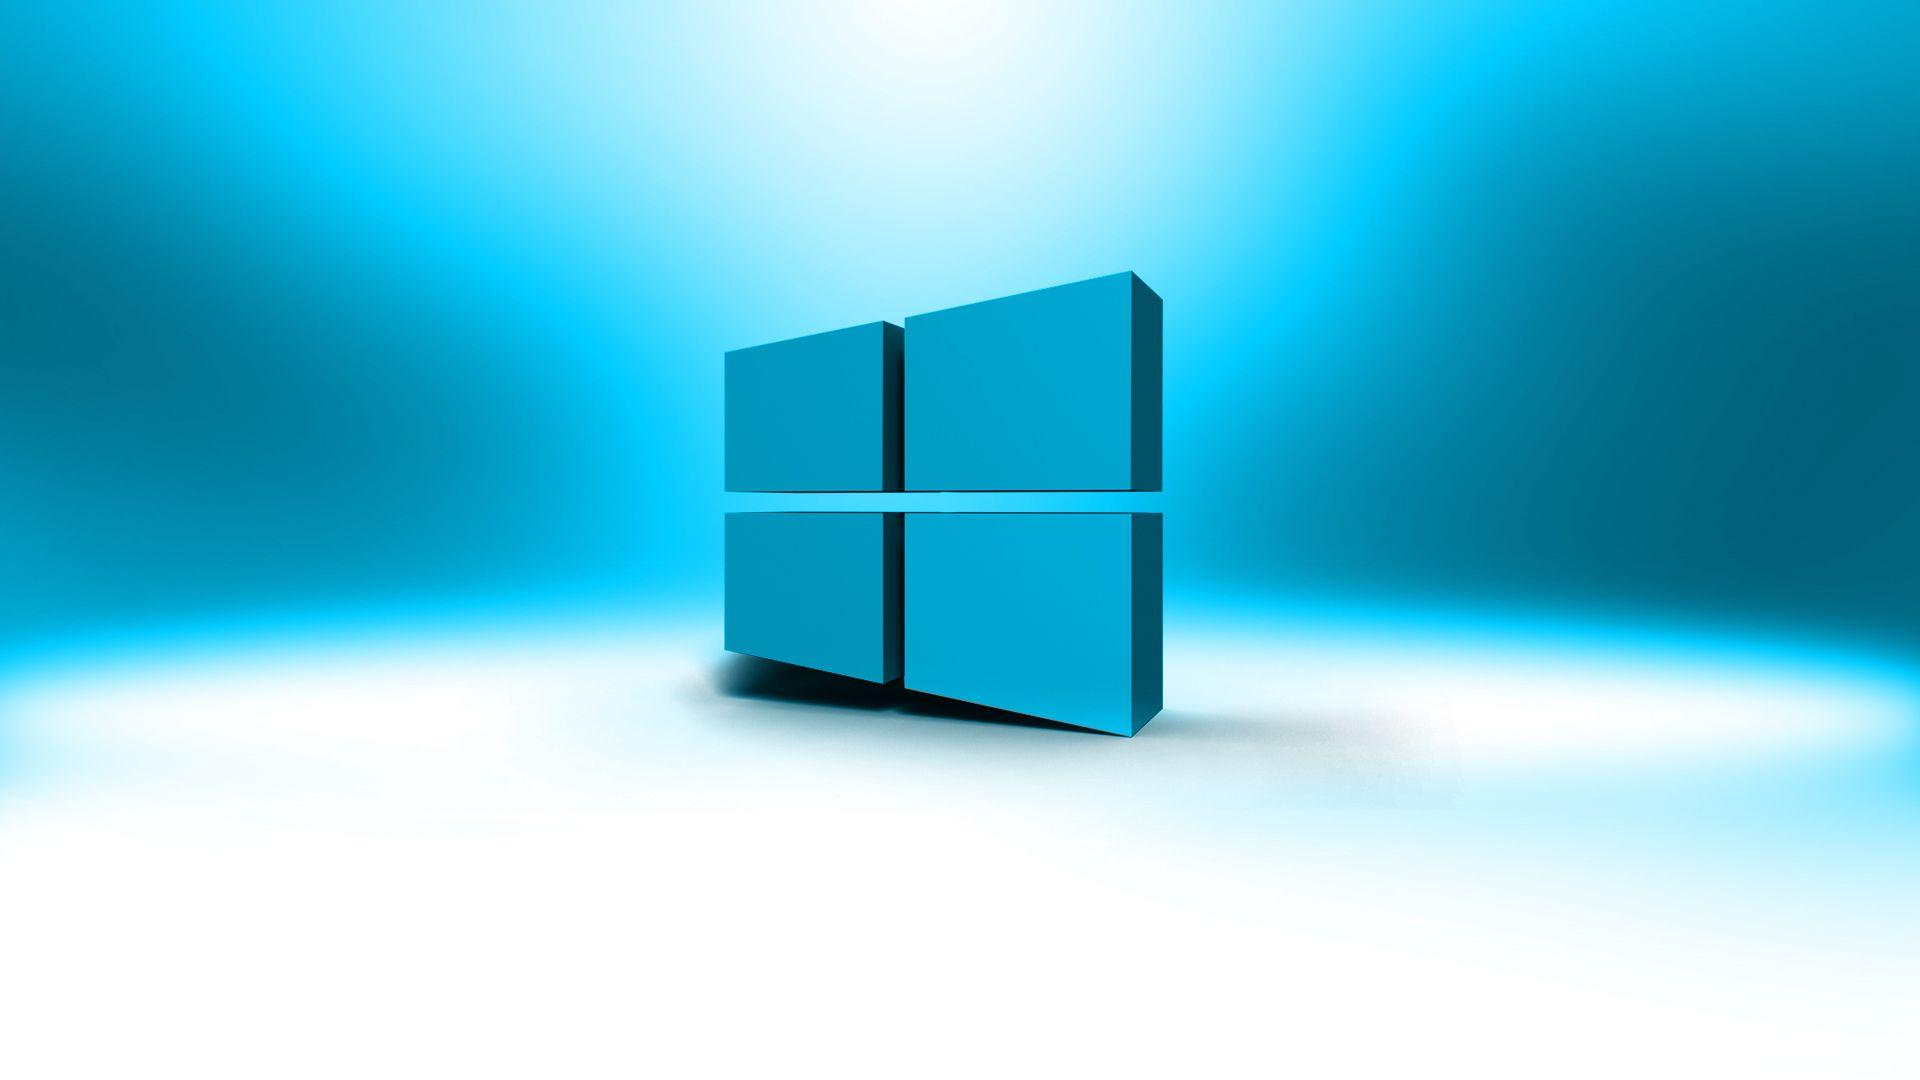 Microsoft windows 3d wallpapers